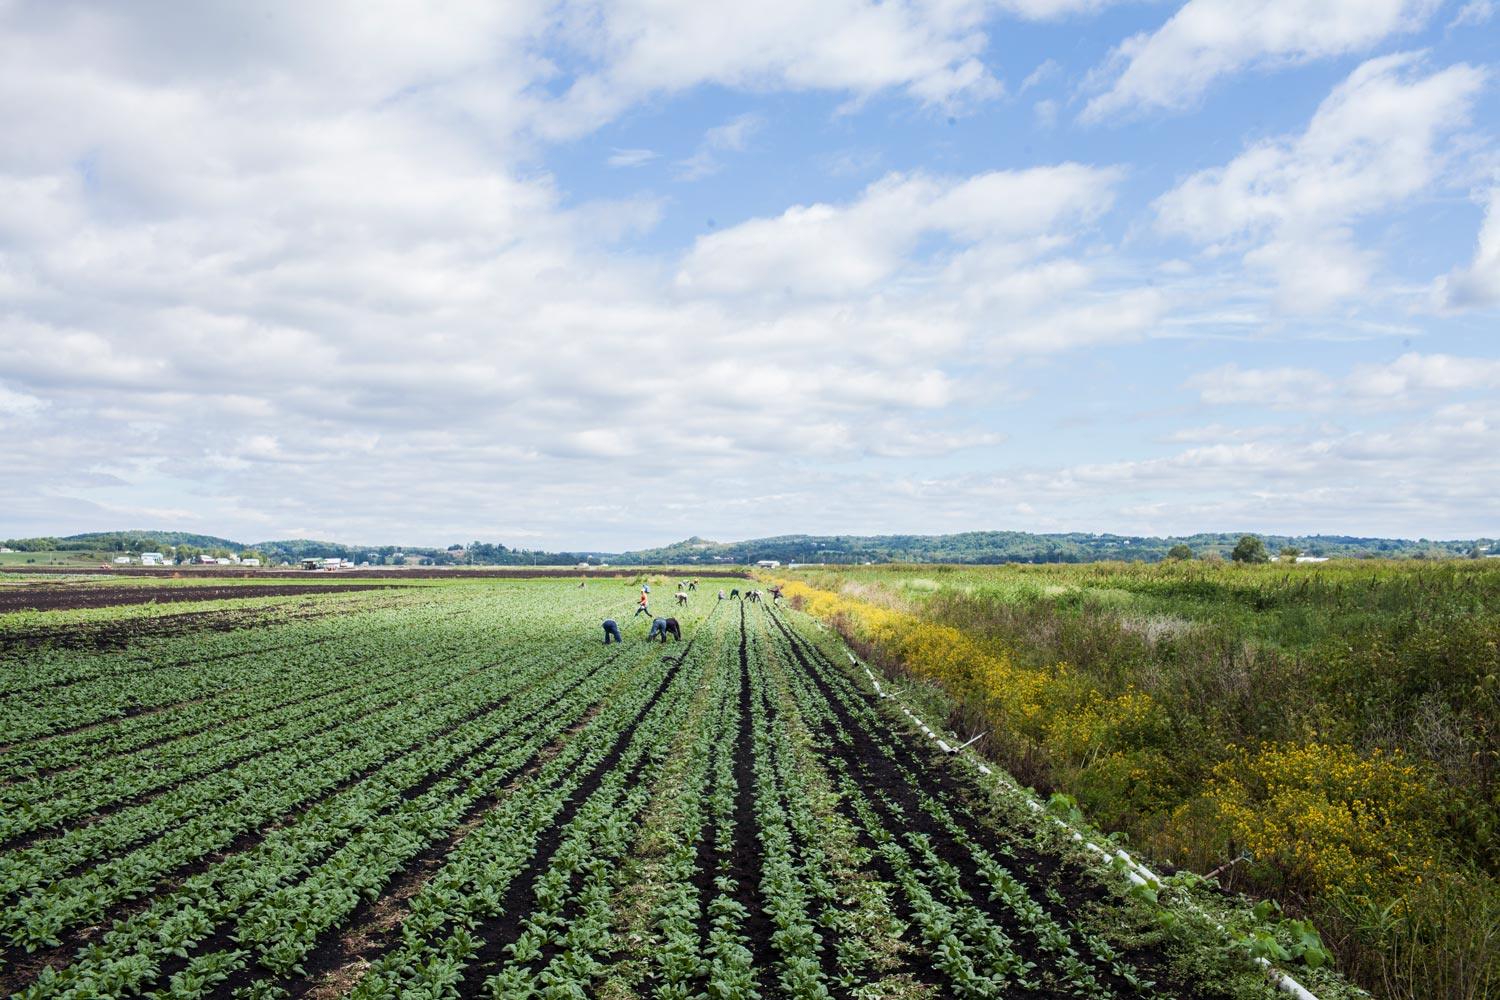 Dig Inn leases farmland in Chester, N.Y. to grow some of its ingredients.